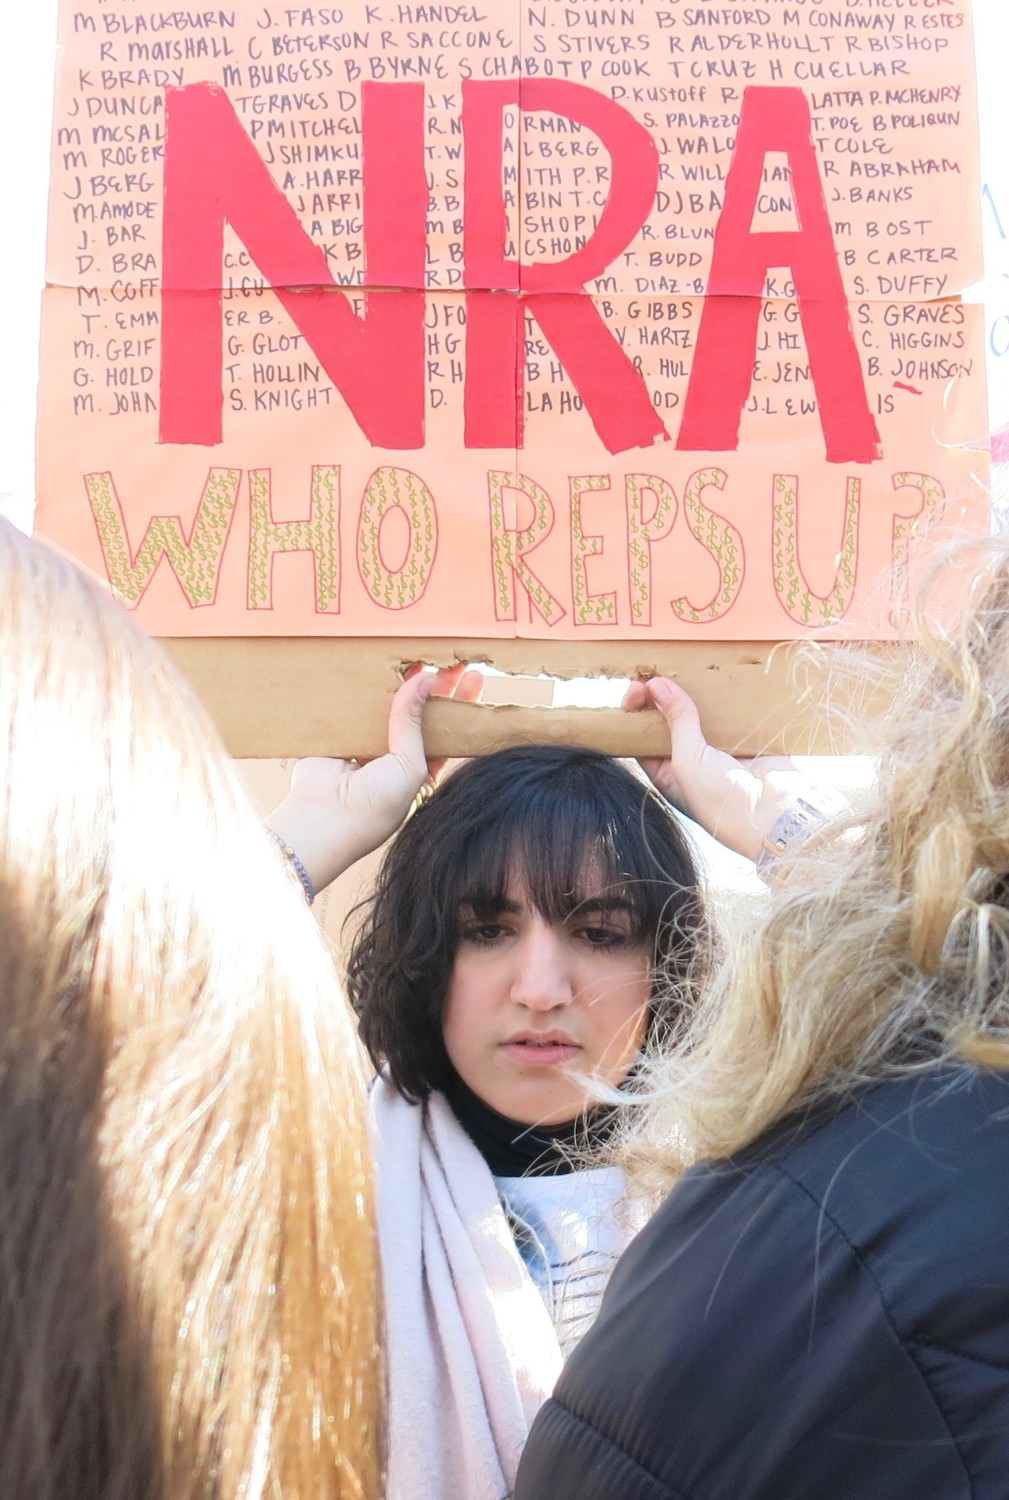 There were many calls to stop the NRA from continuing its influence over elected officials.